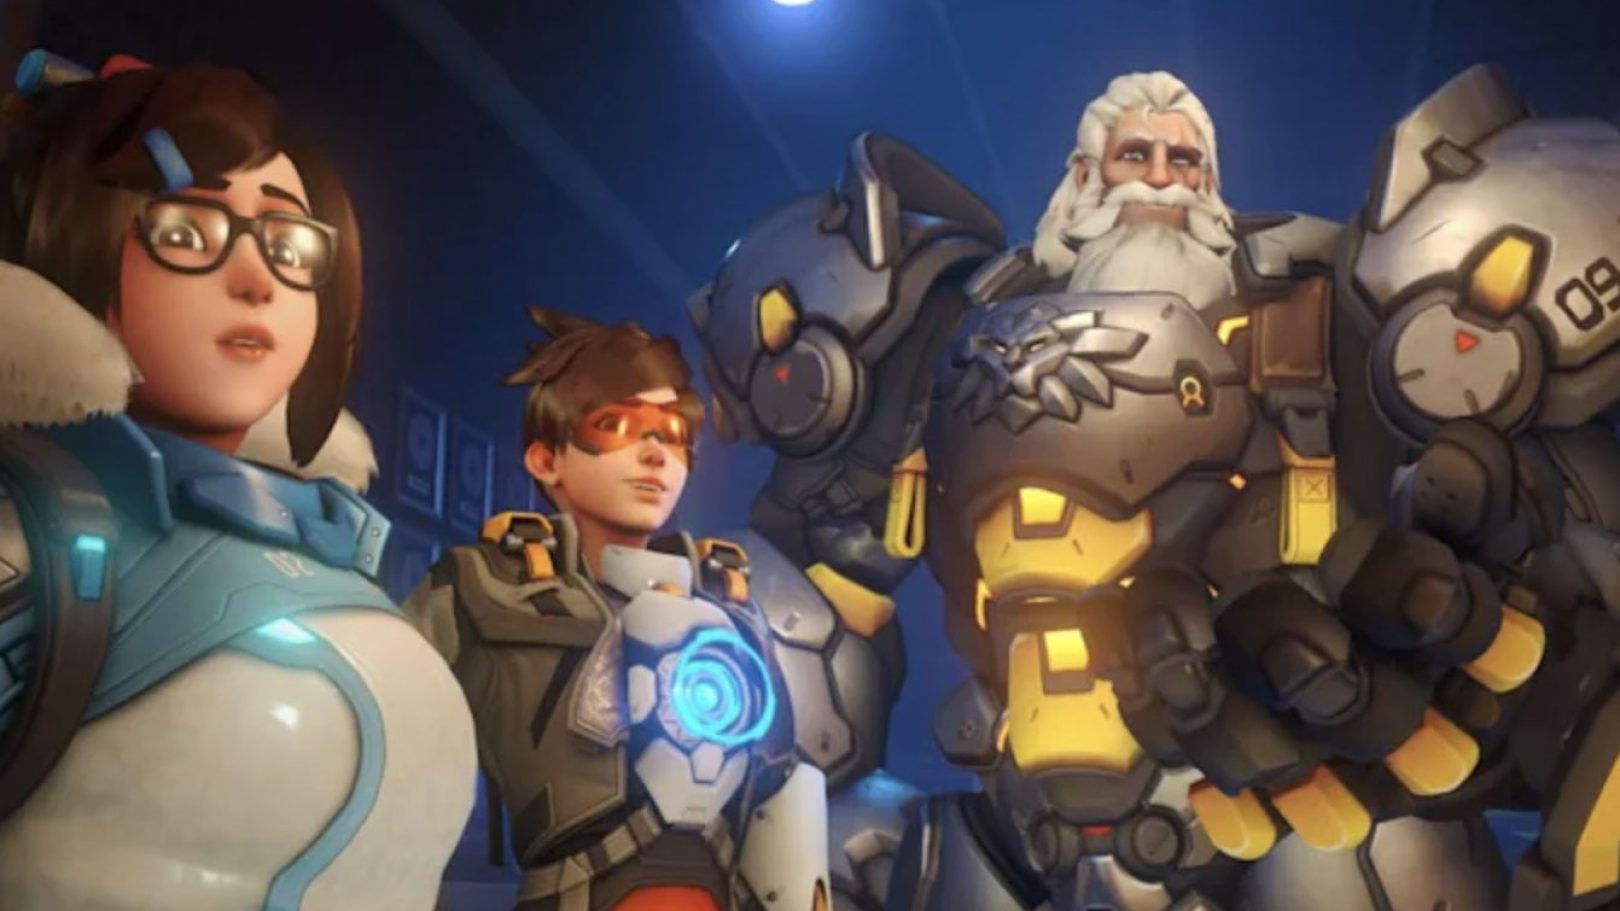 'Overwatch 2' will pit five-person teams against each other